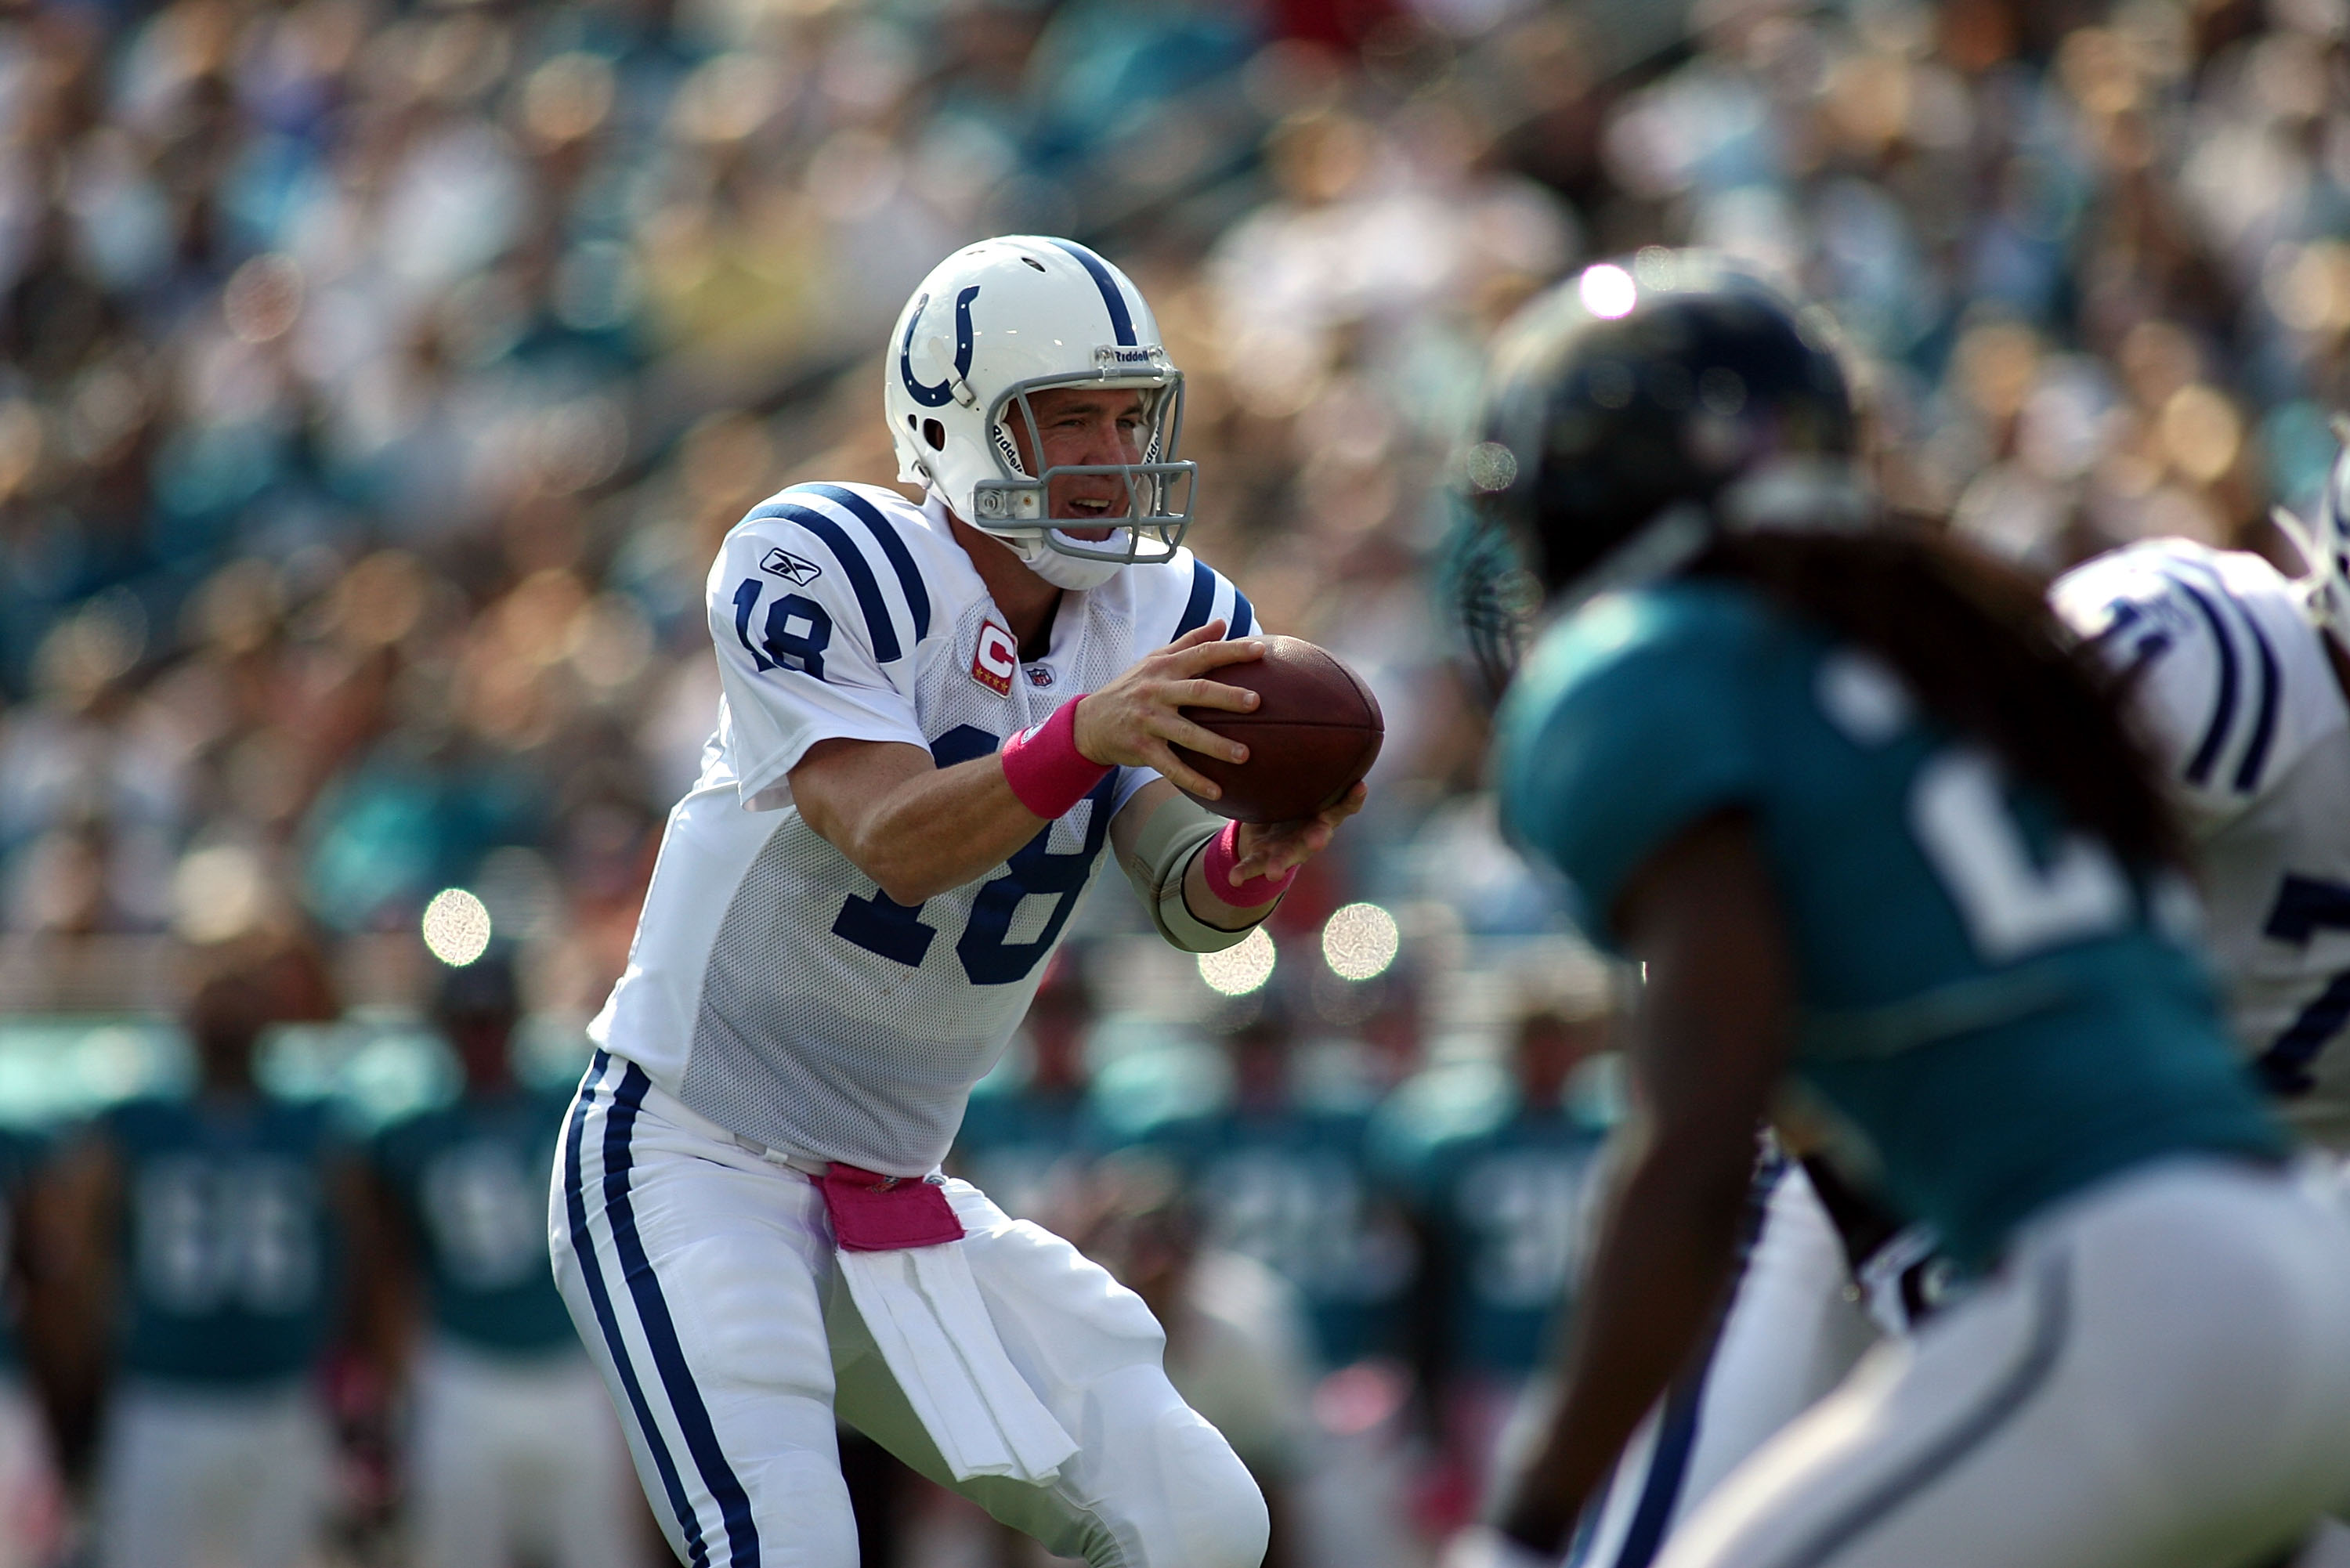 JACKSONVILLE, FL - OCTOBER 03:  Quarterback Peyton Manning #18 of the Indianapolis Colts throws while taking on the Jacksonville Jaguars at EverBank Field on October 3, 2010 in Jacksonville, Florida. The Jaguars won 31-28.  (Photo by Marc Serota/Getty Ima